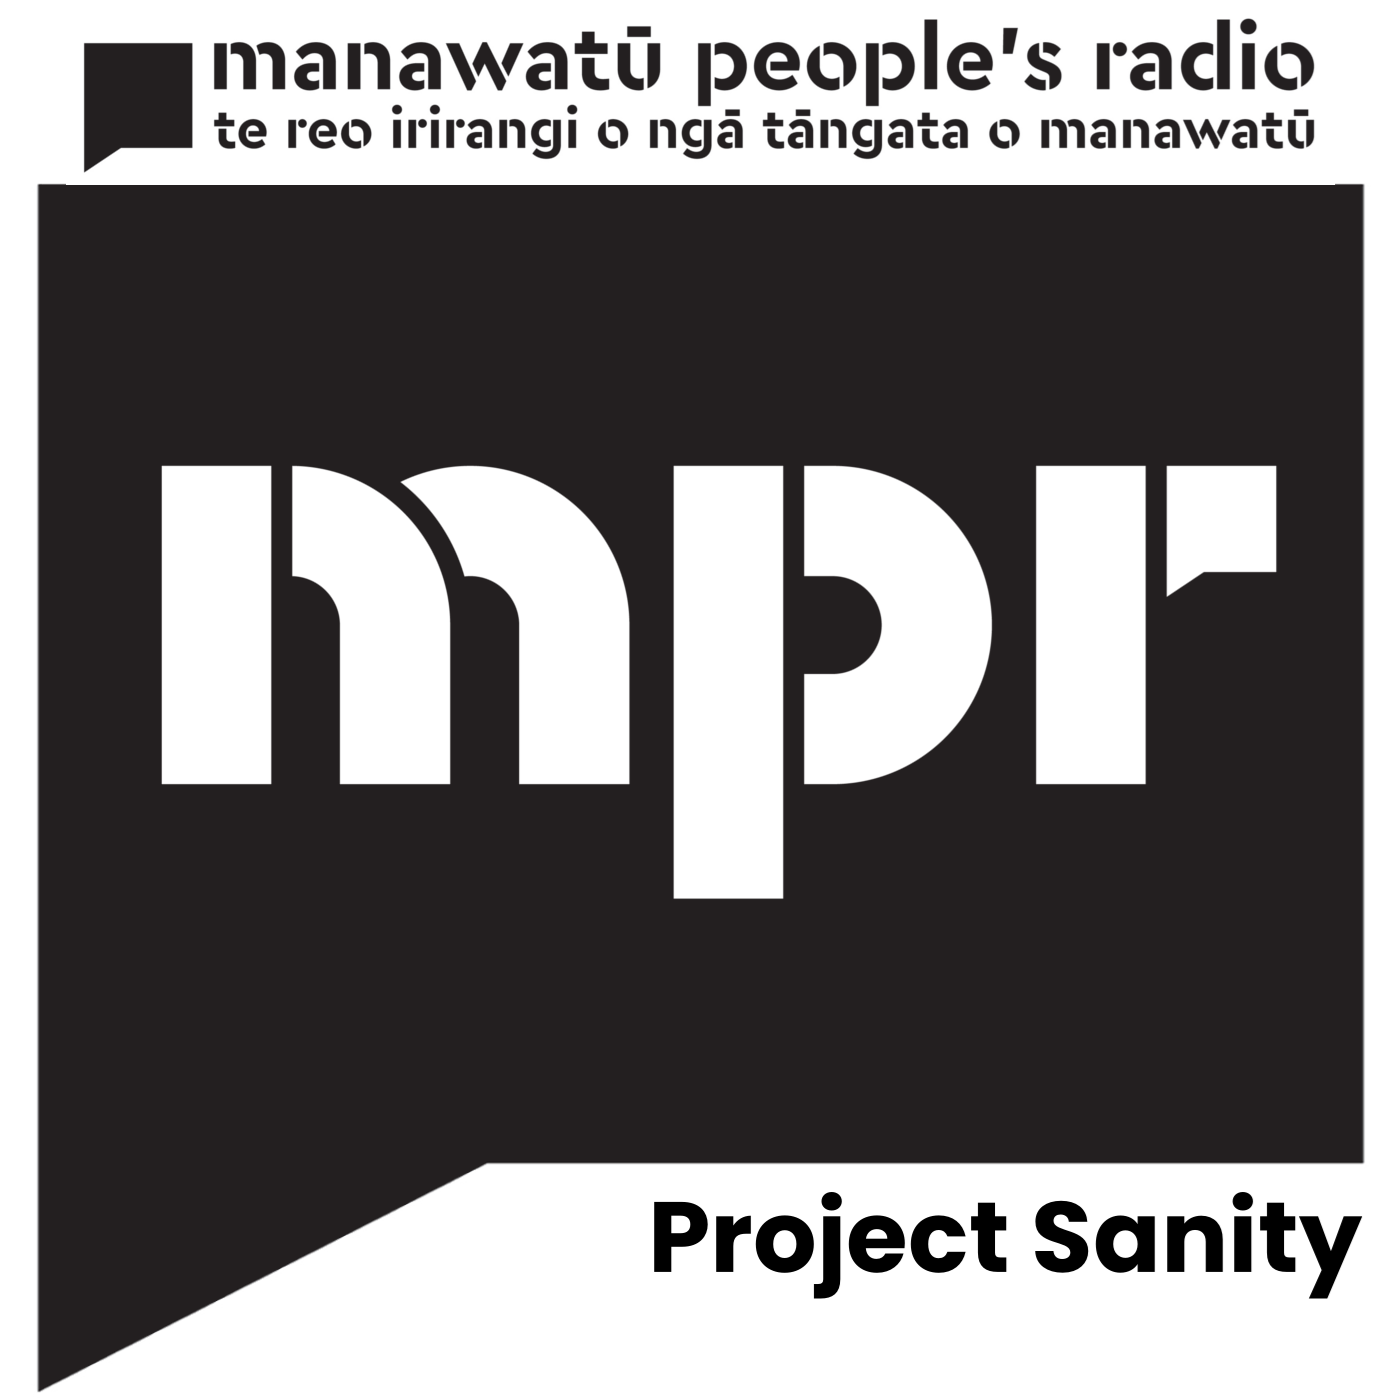 Project Sanity